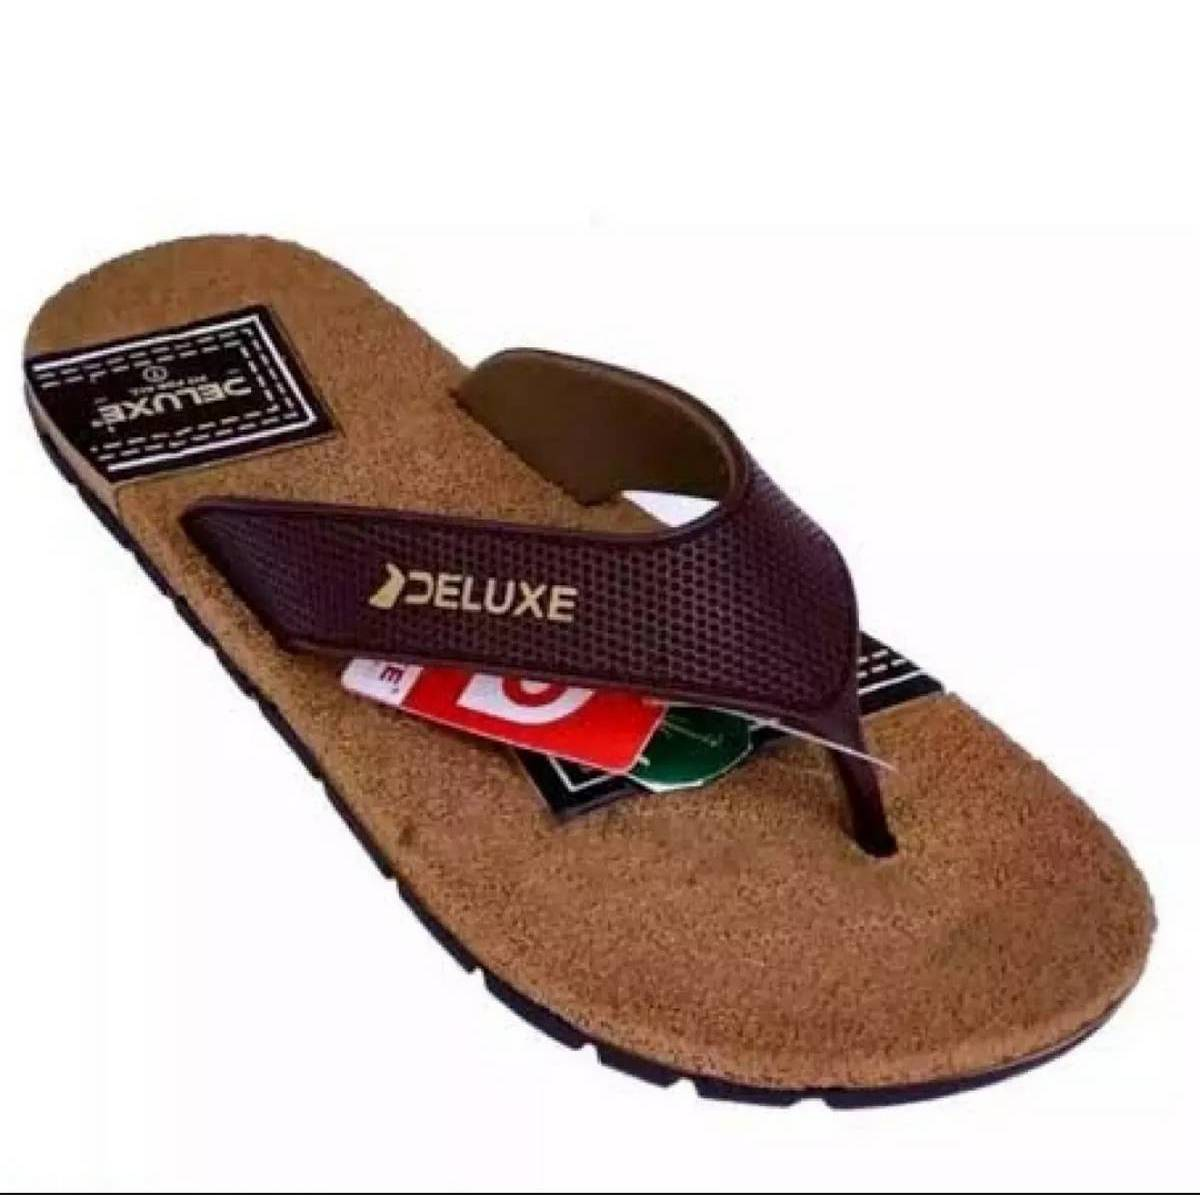 TOP Demand Chappal DELUXE For MEN - Lowest Price ever